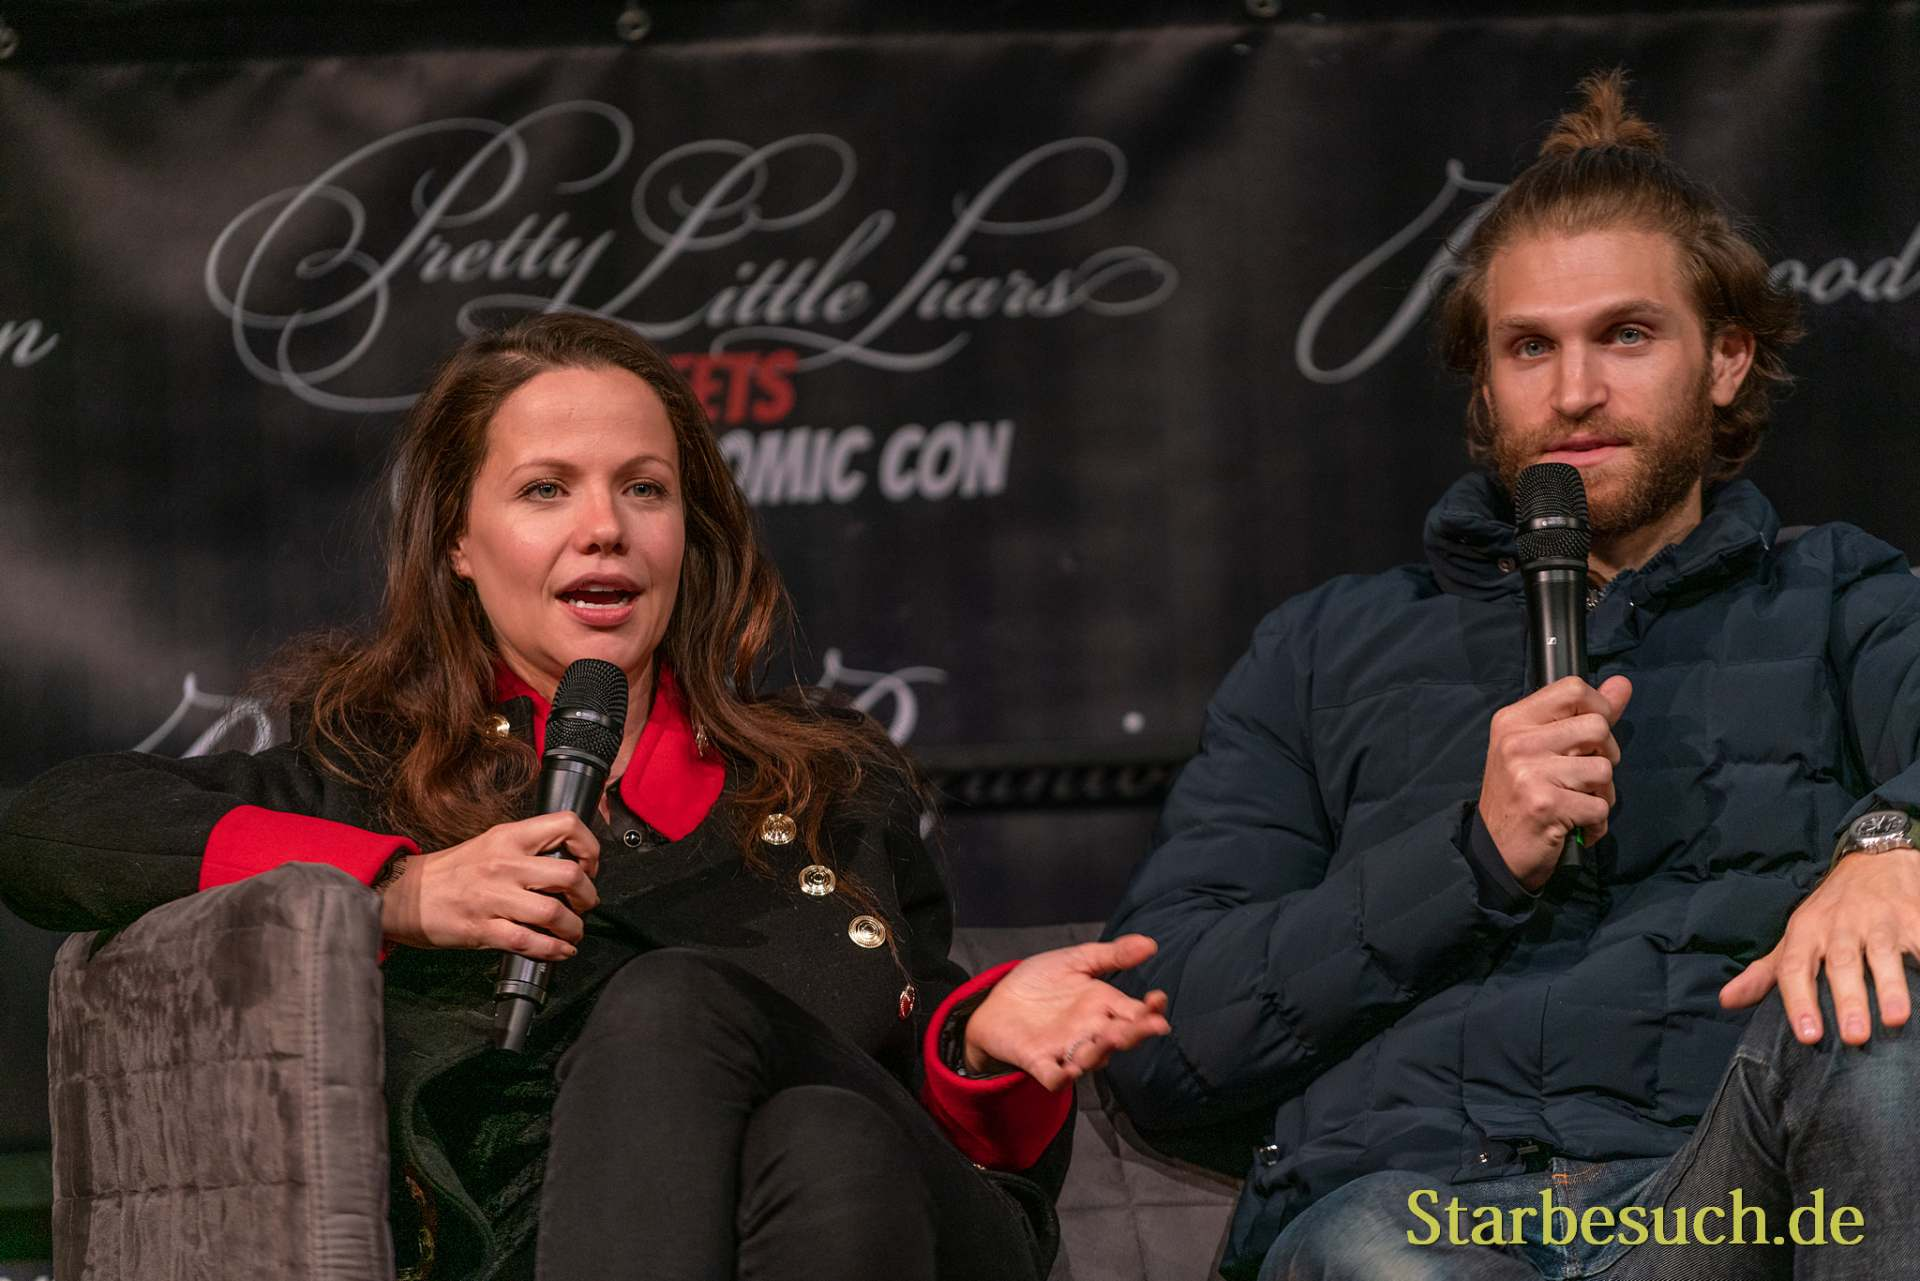 DORTMUND, GERMANY - December 7th 2019: Keegan Allen and Tammin Sursok at German Comic Con Dortmund